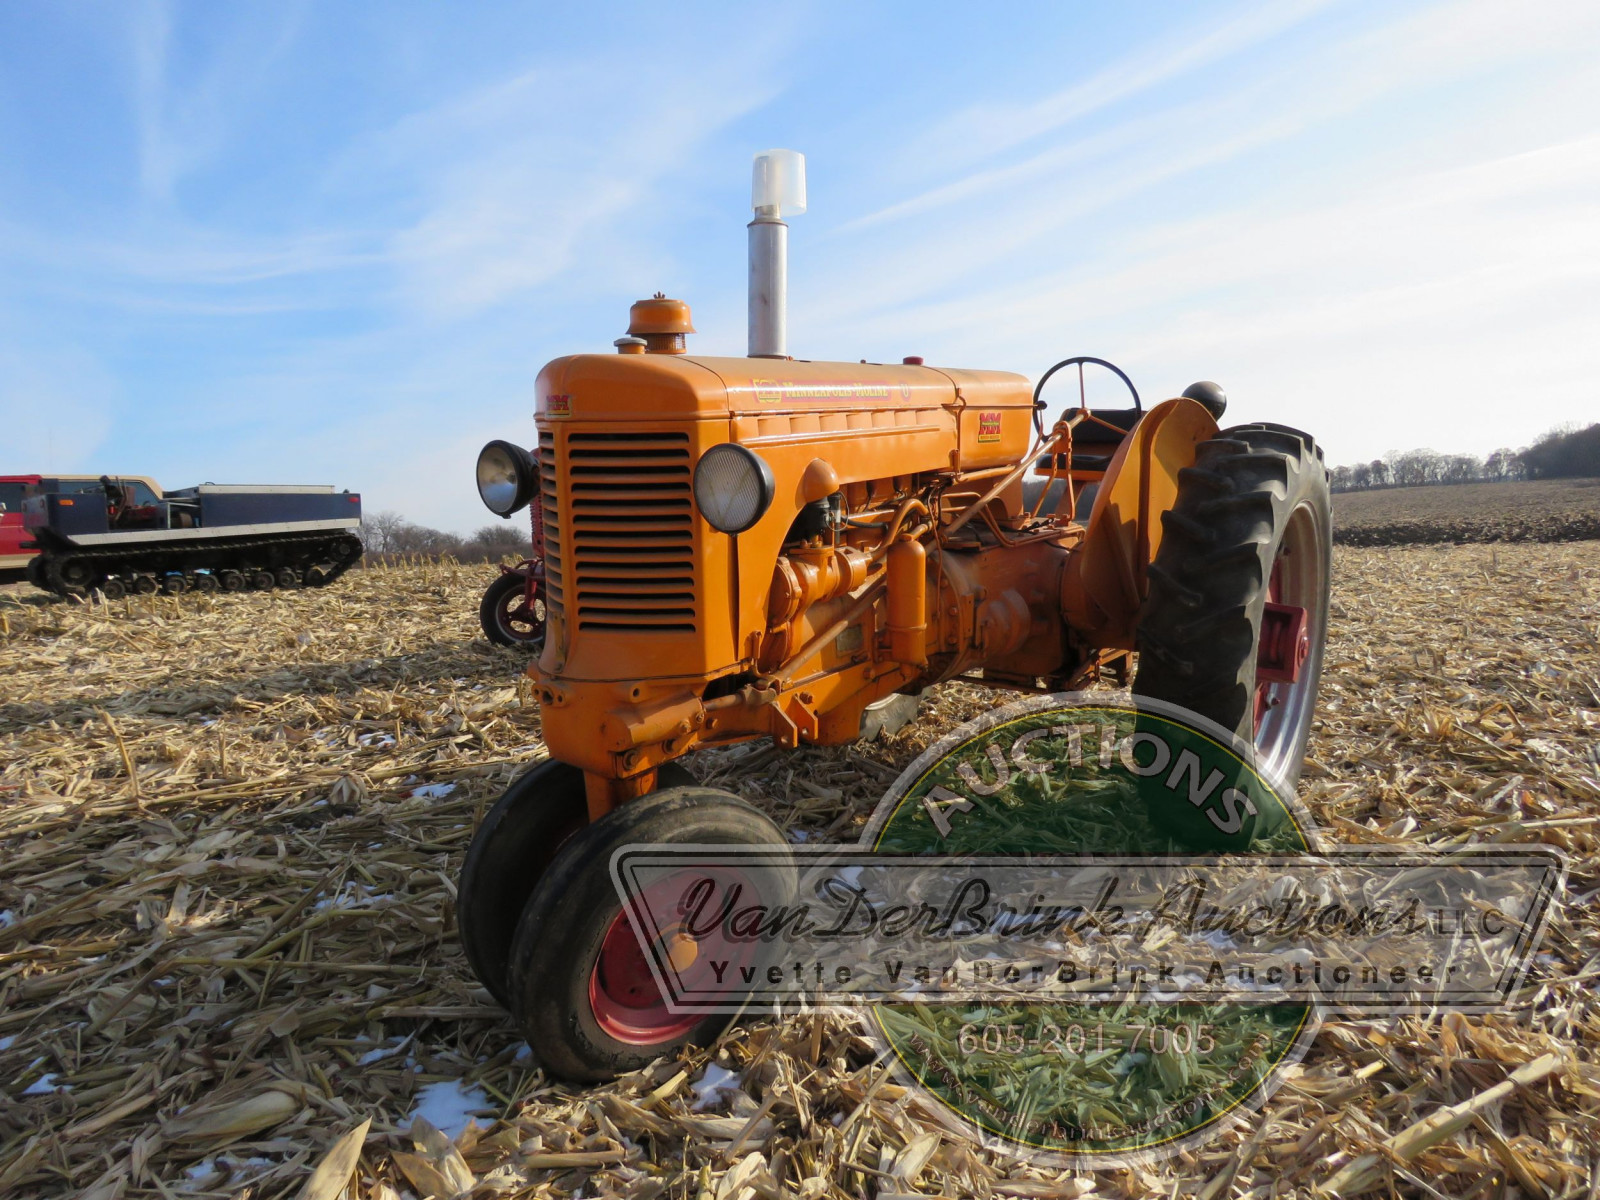 Minneapolis Moline U Tractor - Image 1